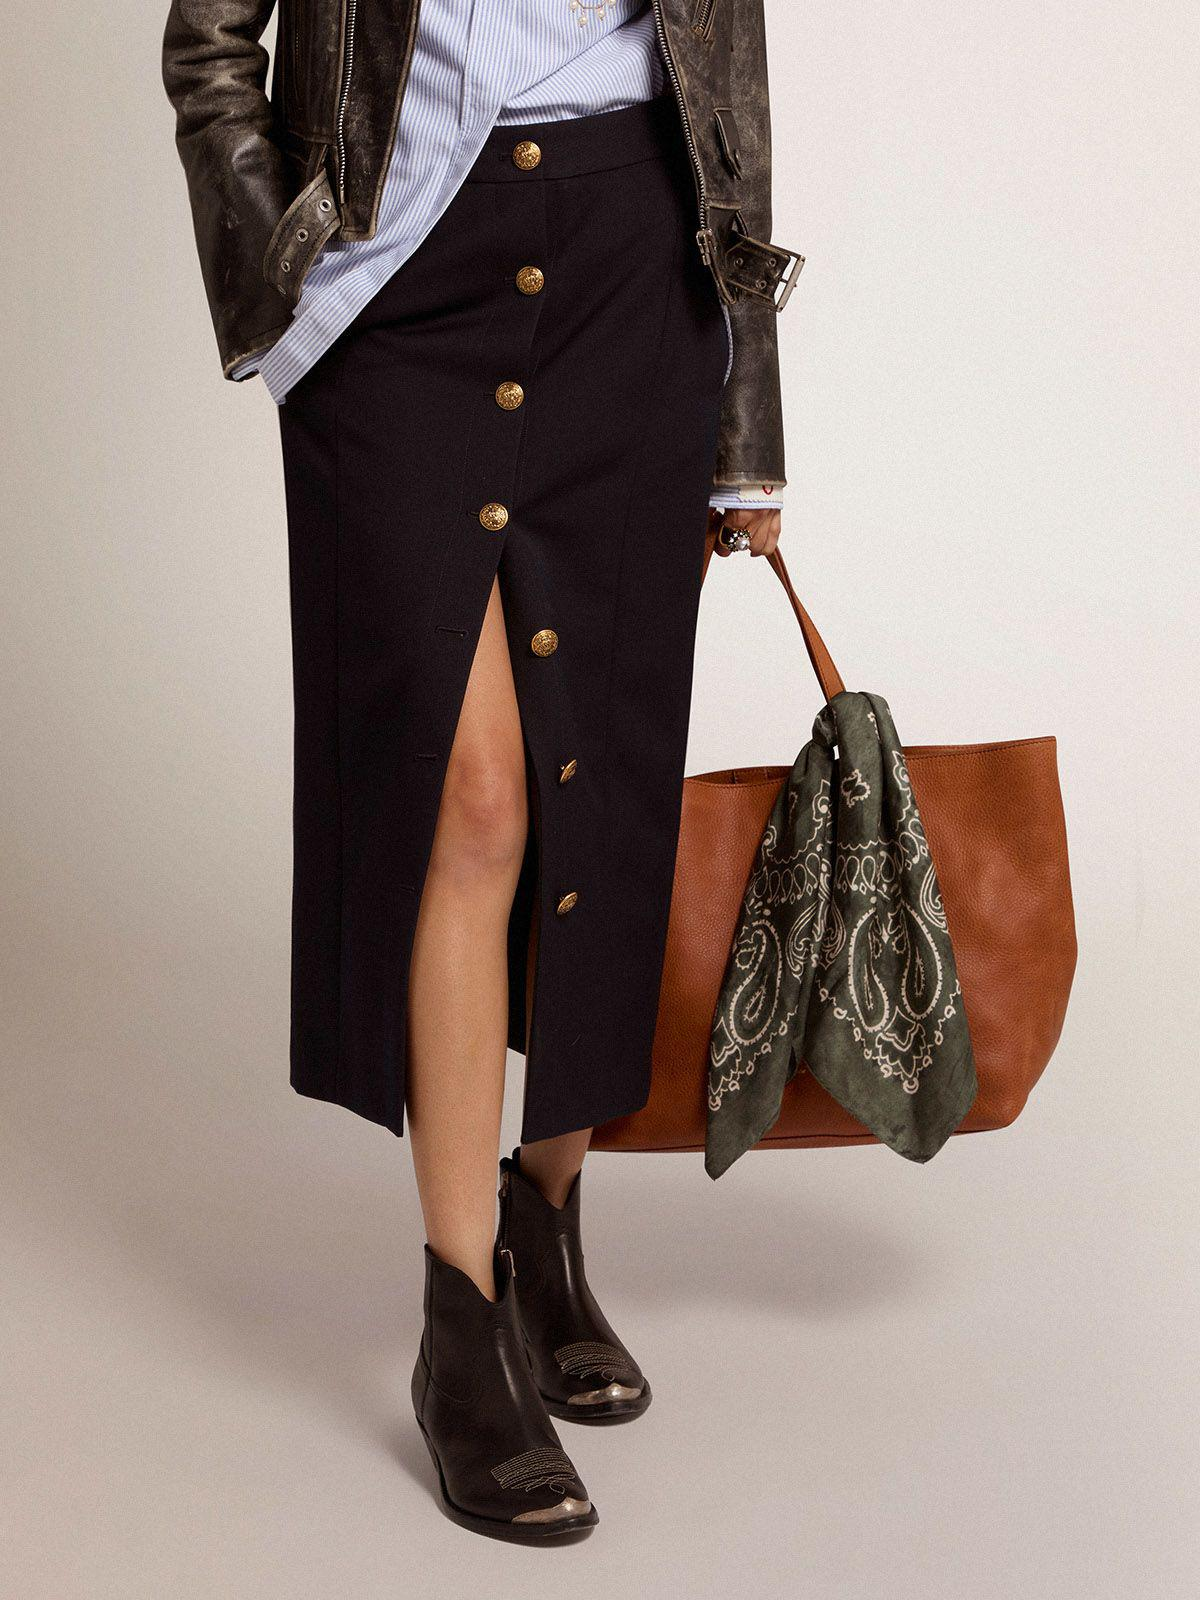 Golden Collection pencil skirt in dark blue wool with gold-colored heraldic buttons